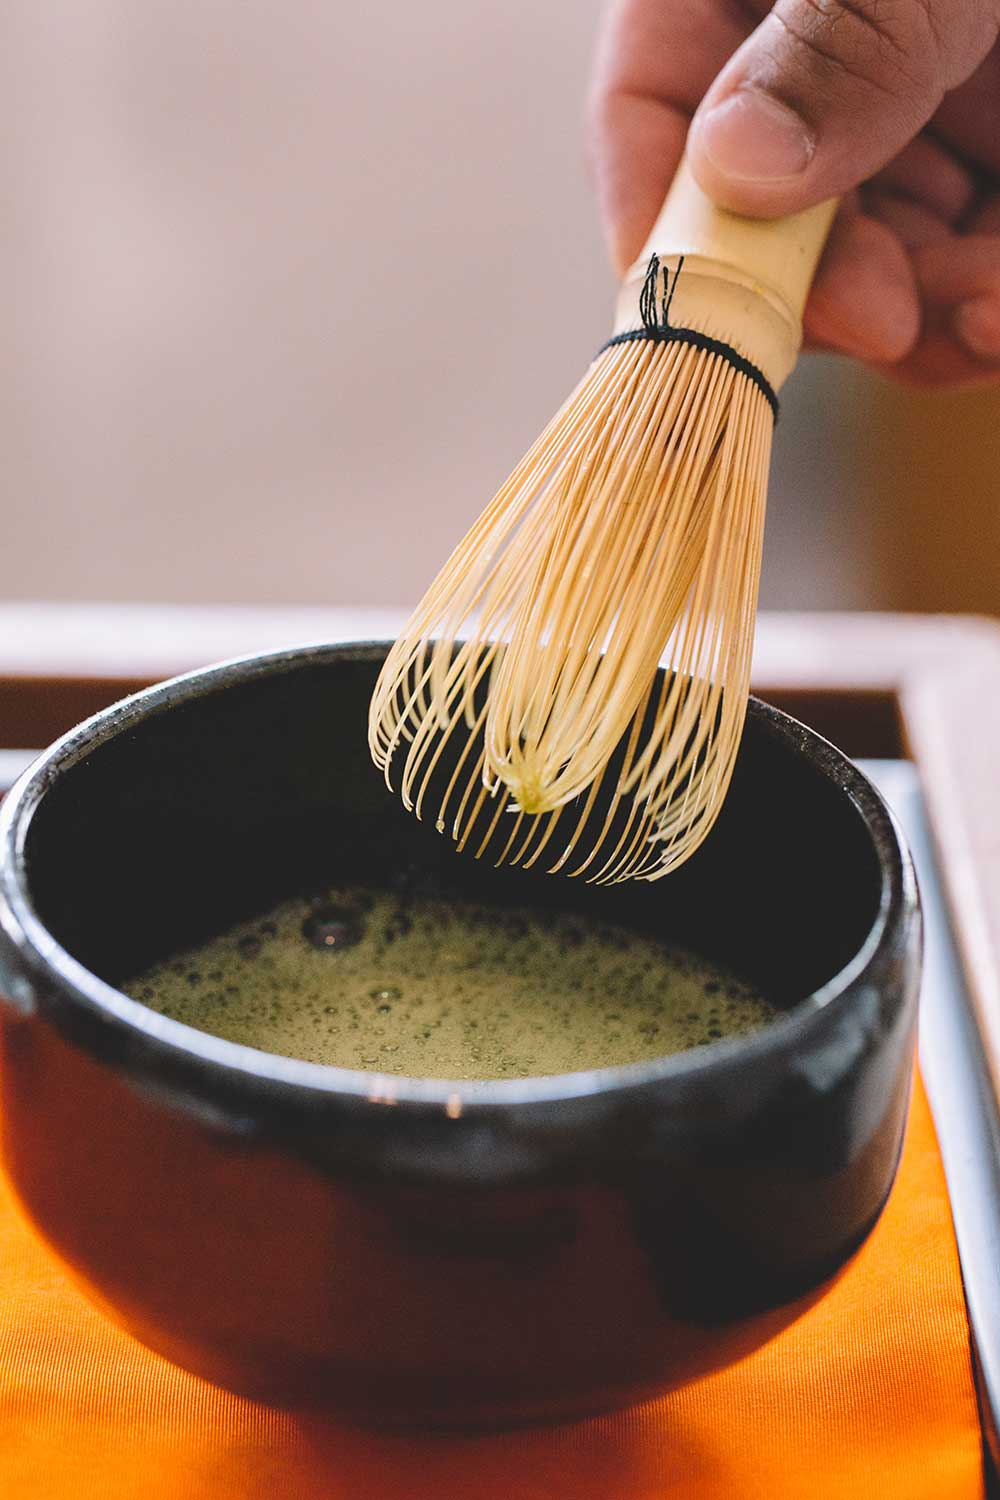 person stirring matcha tea with bamboo whisk